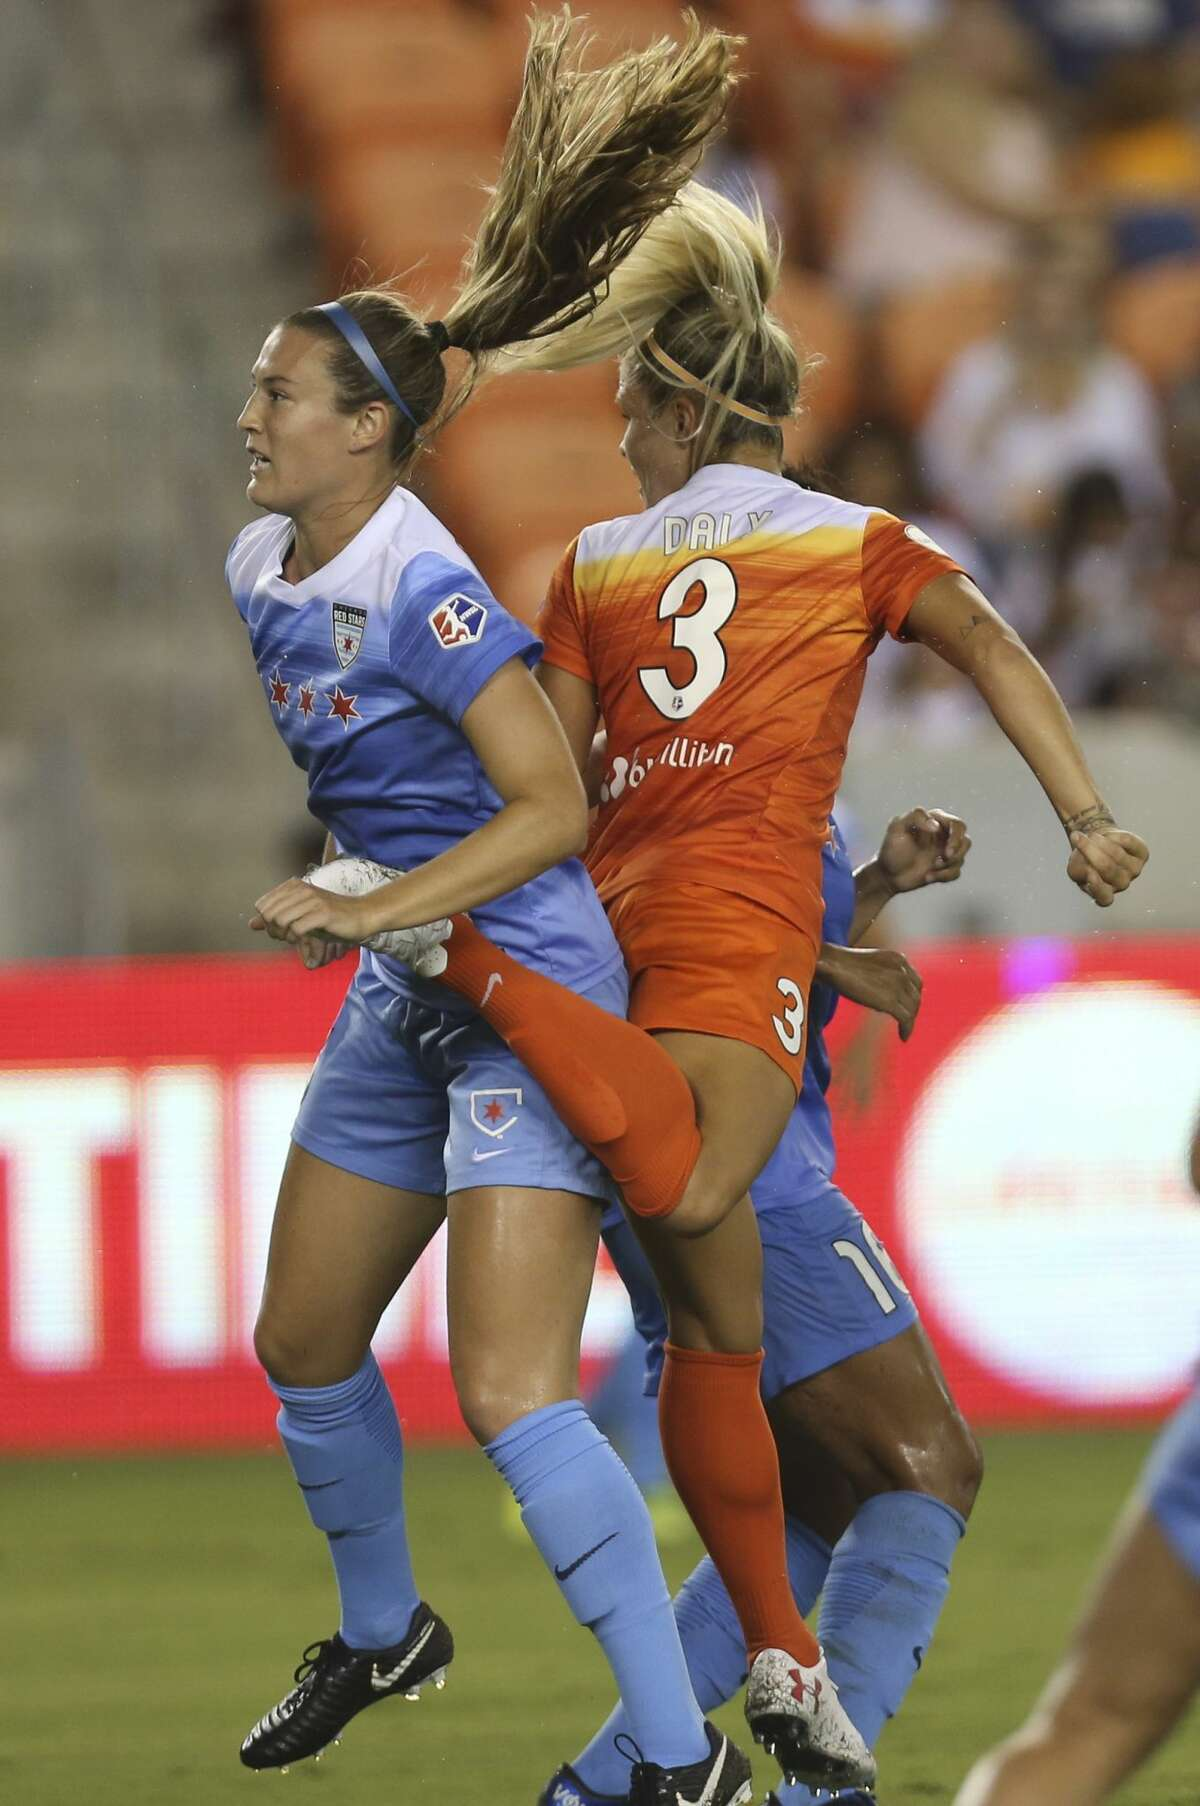 Houston Dash forward Rachel Daly (3) tries to score with the back of her foot while Chicago Red Stars defender Katie Naughton (5) is defensing her during the first half of the game at BBVA Compass Stadium Saturday, Sept. 23, 2017, in Houston. ( Yi-Chin Lee / Houston Chronicle )